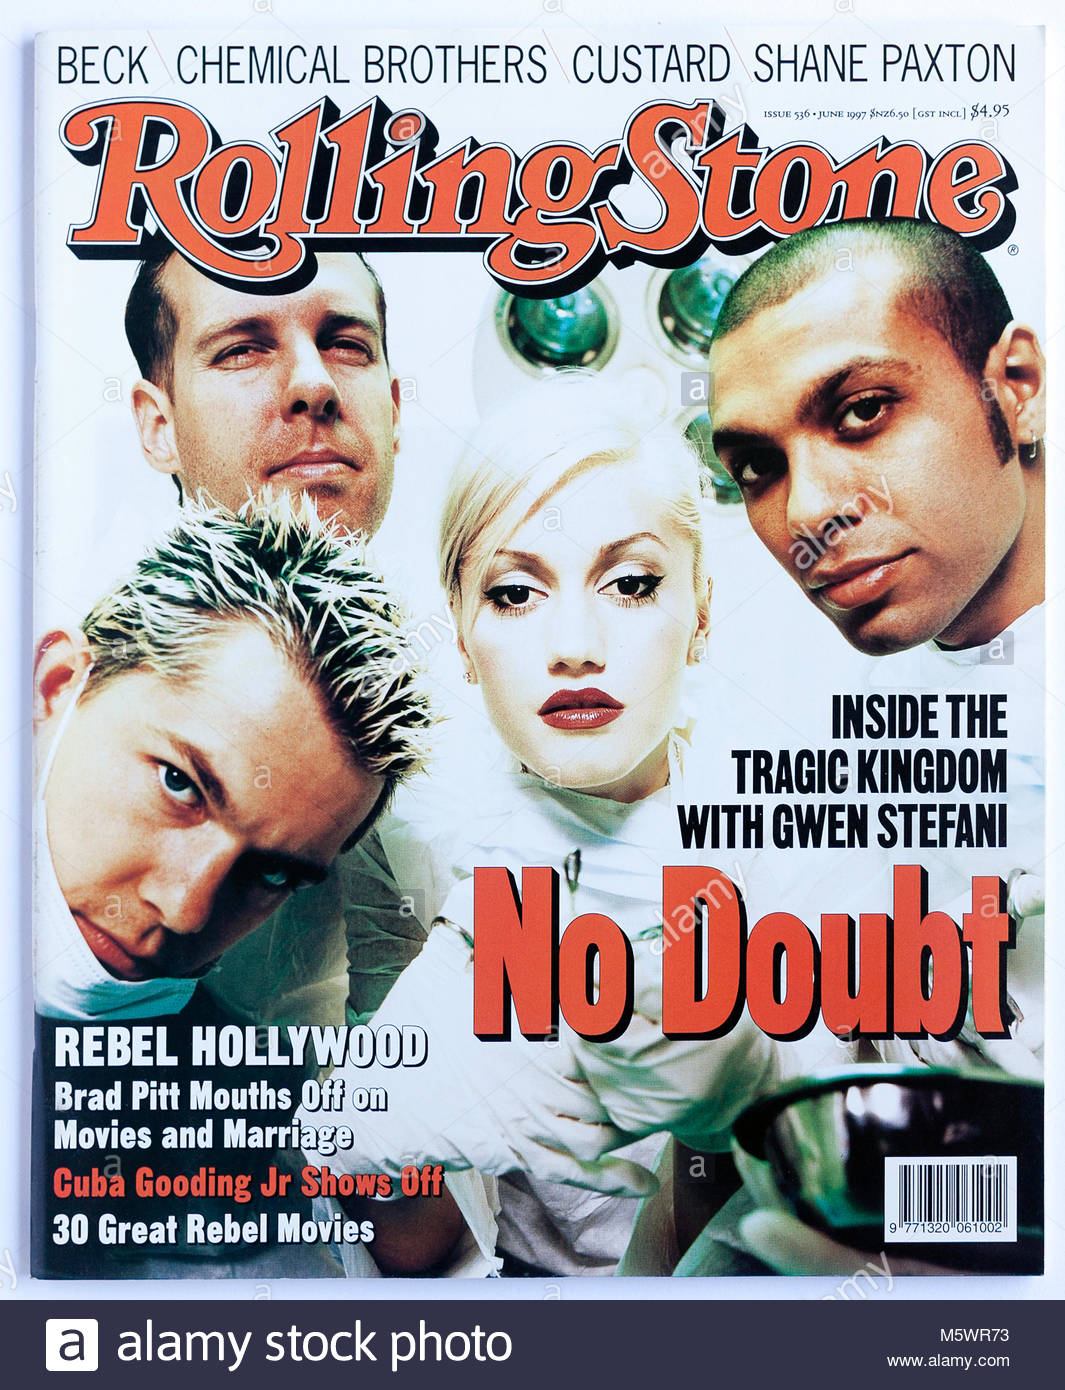 The cover of Rolling Stone magazine, issue 536, No Doubt - Stock Image